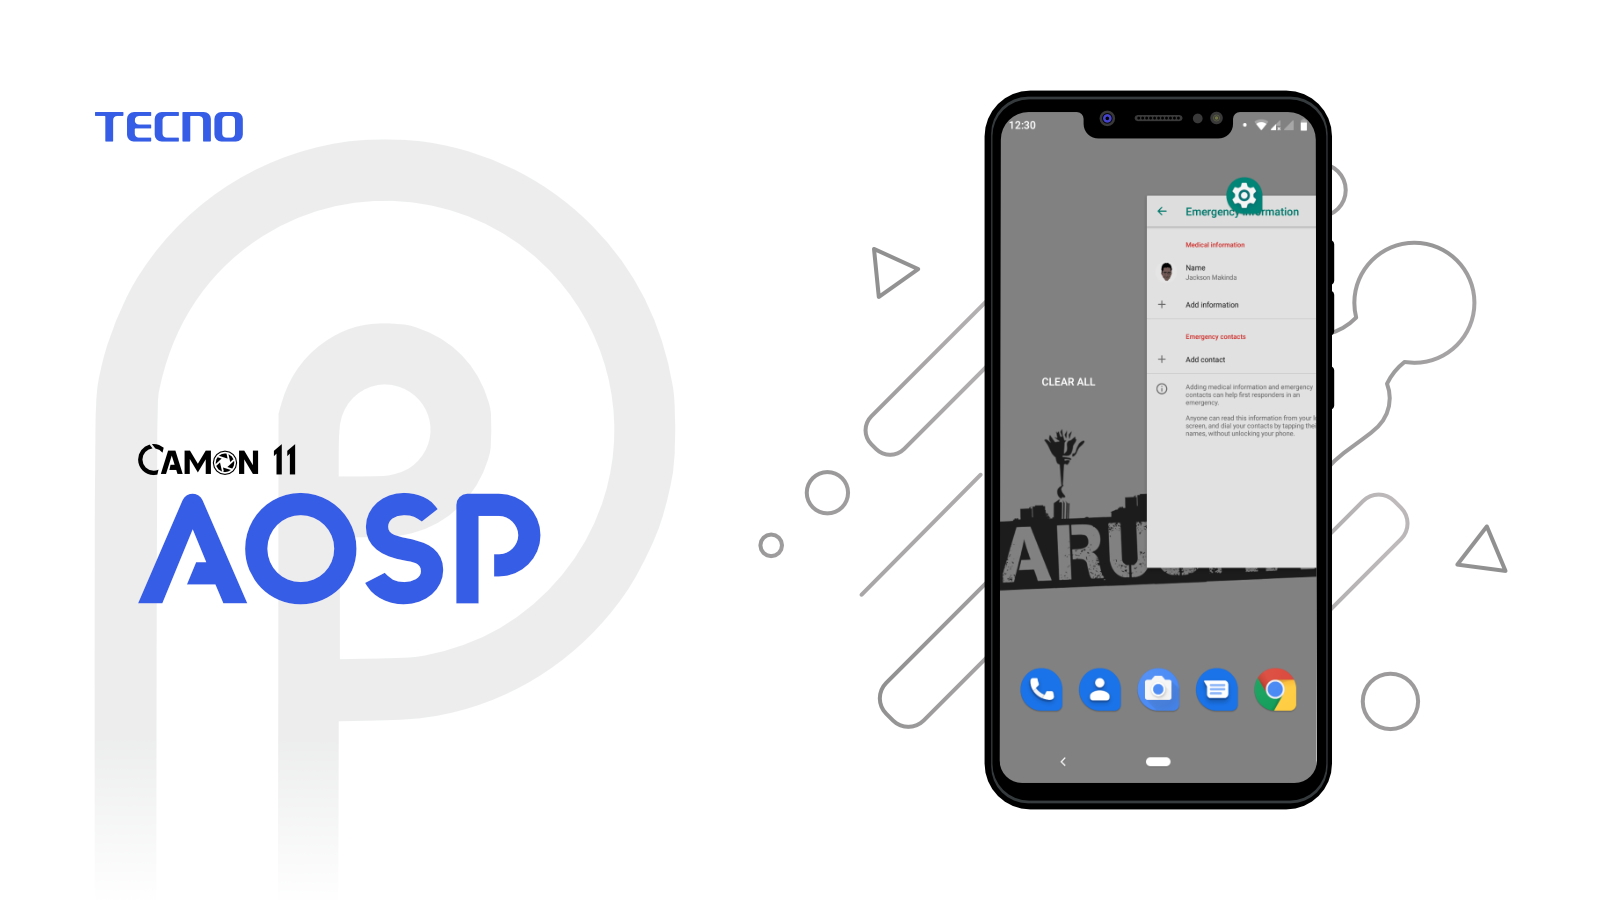 AOSP Android 9 0 Pie on CAMON 11 - TECNO MOBILE COMMUNITY